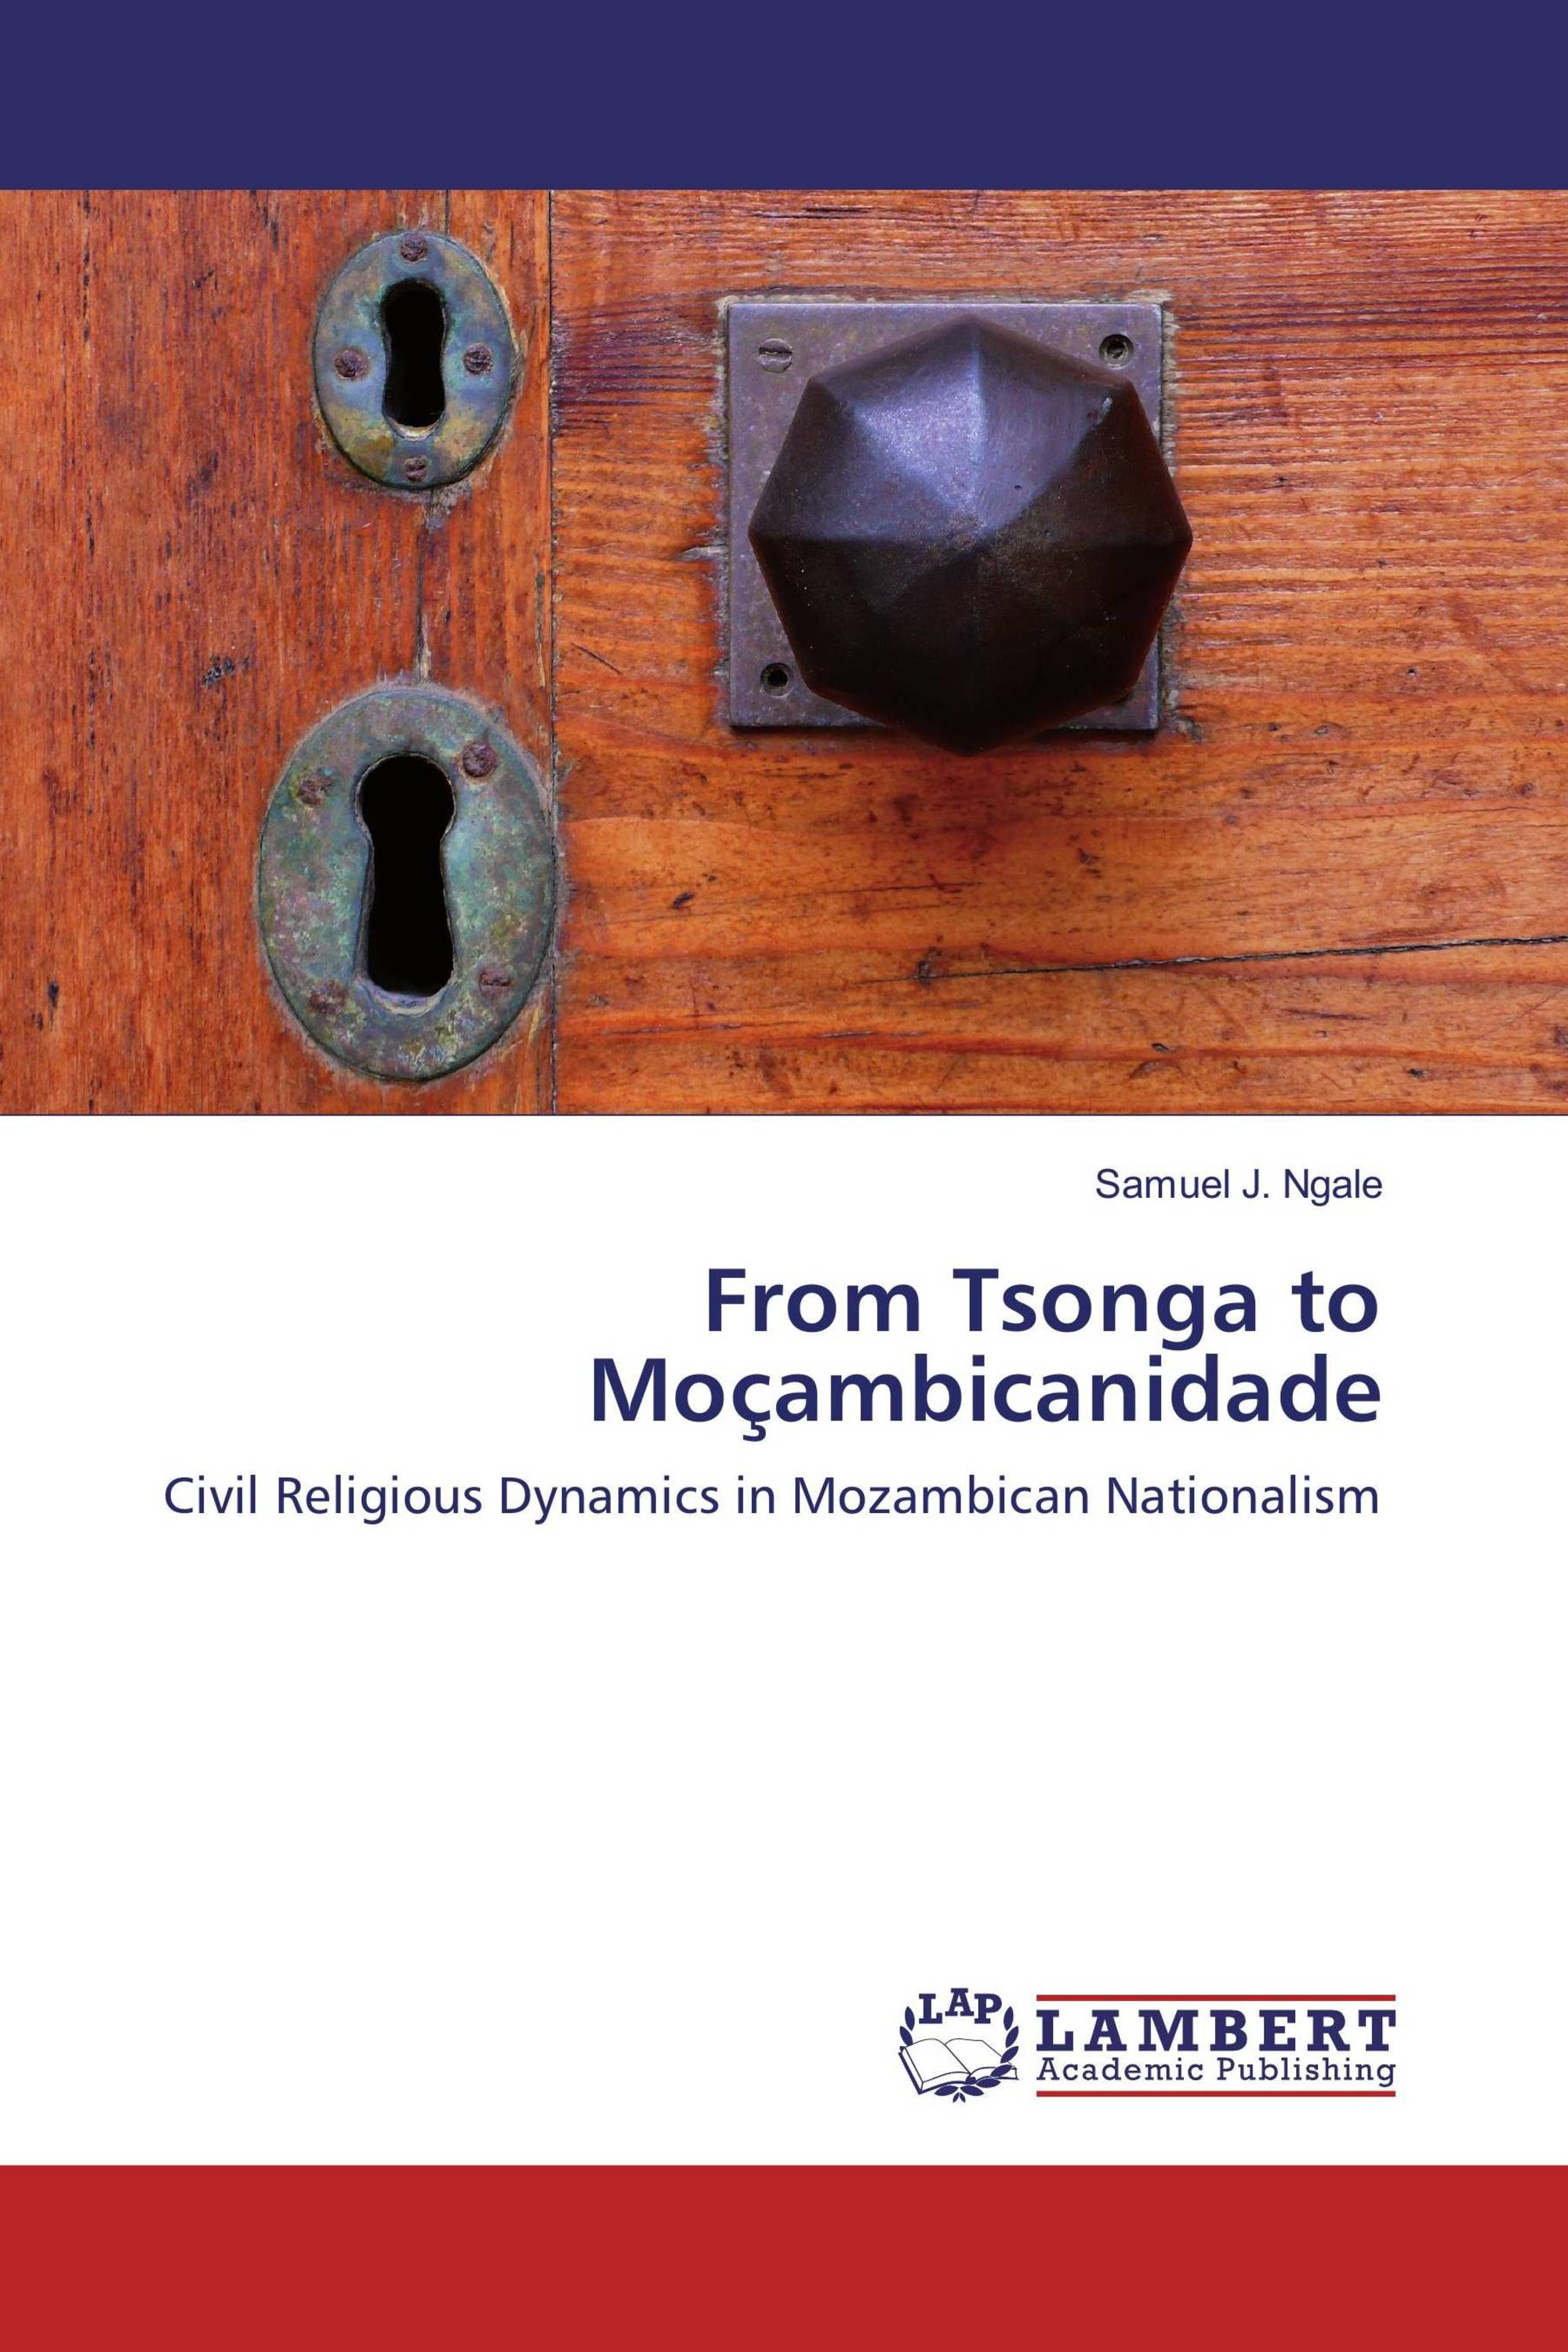 From Tsonga to Moçambicanidade